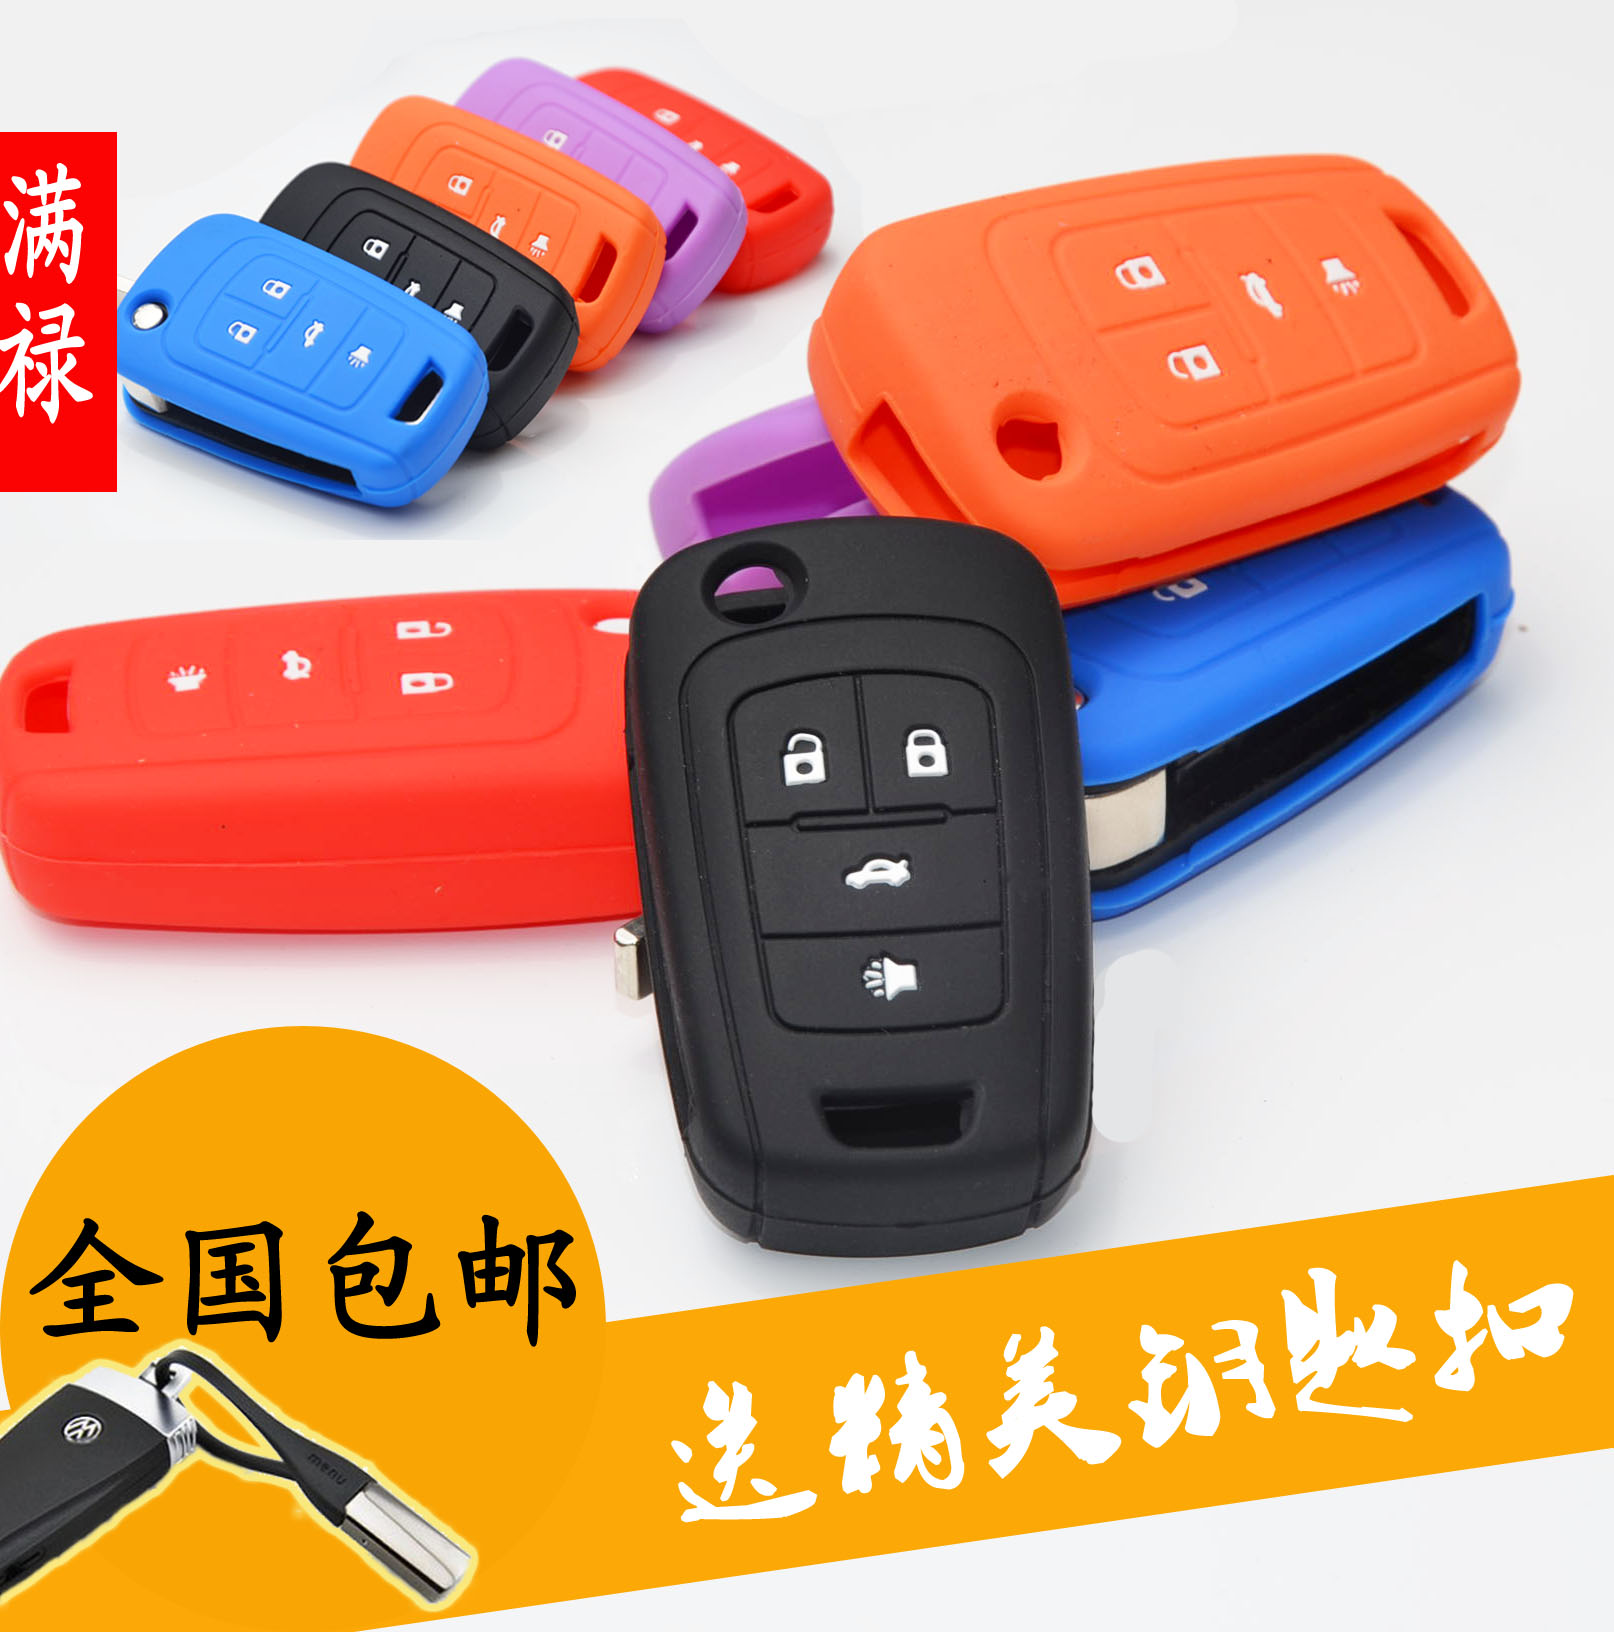 New buick excelle new regal lacrosse ang kela hideo gt special silicone car key cases key sets